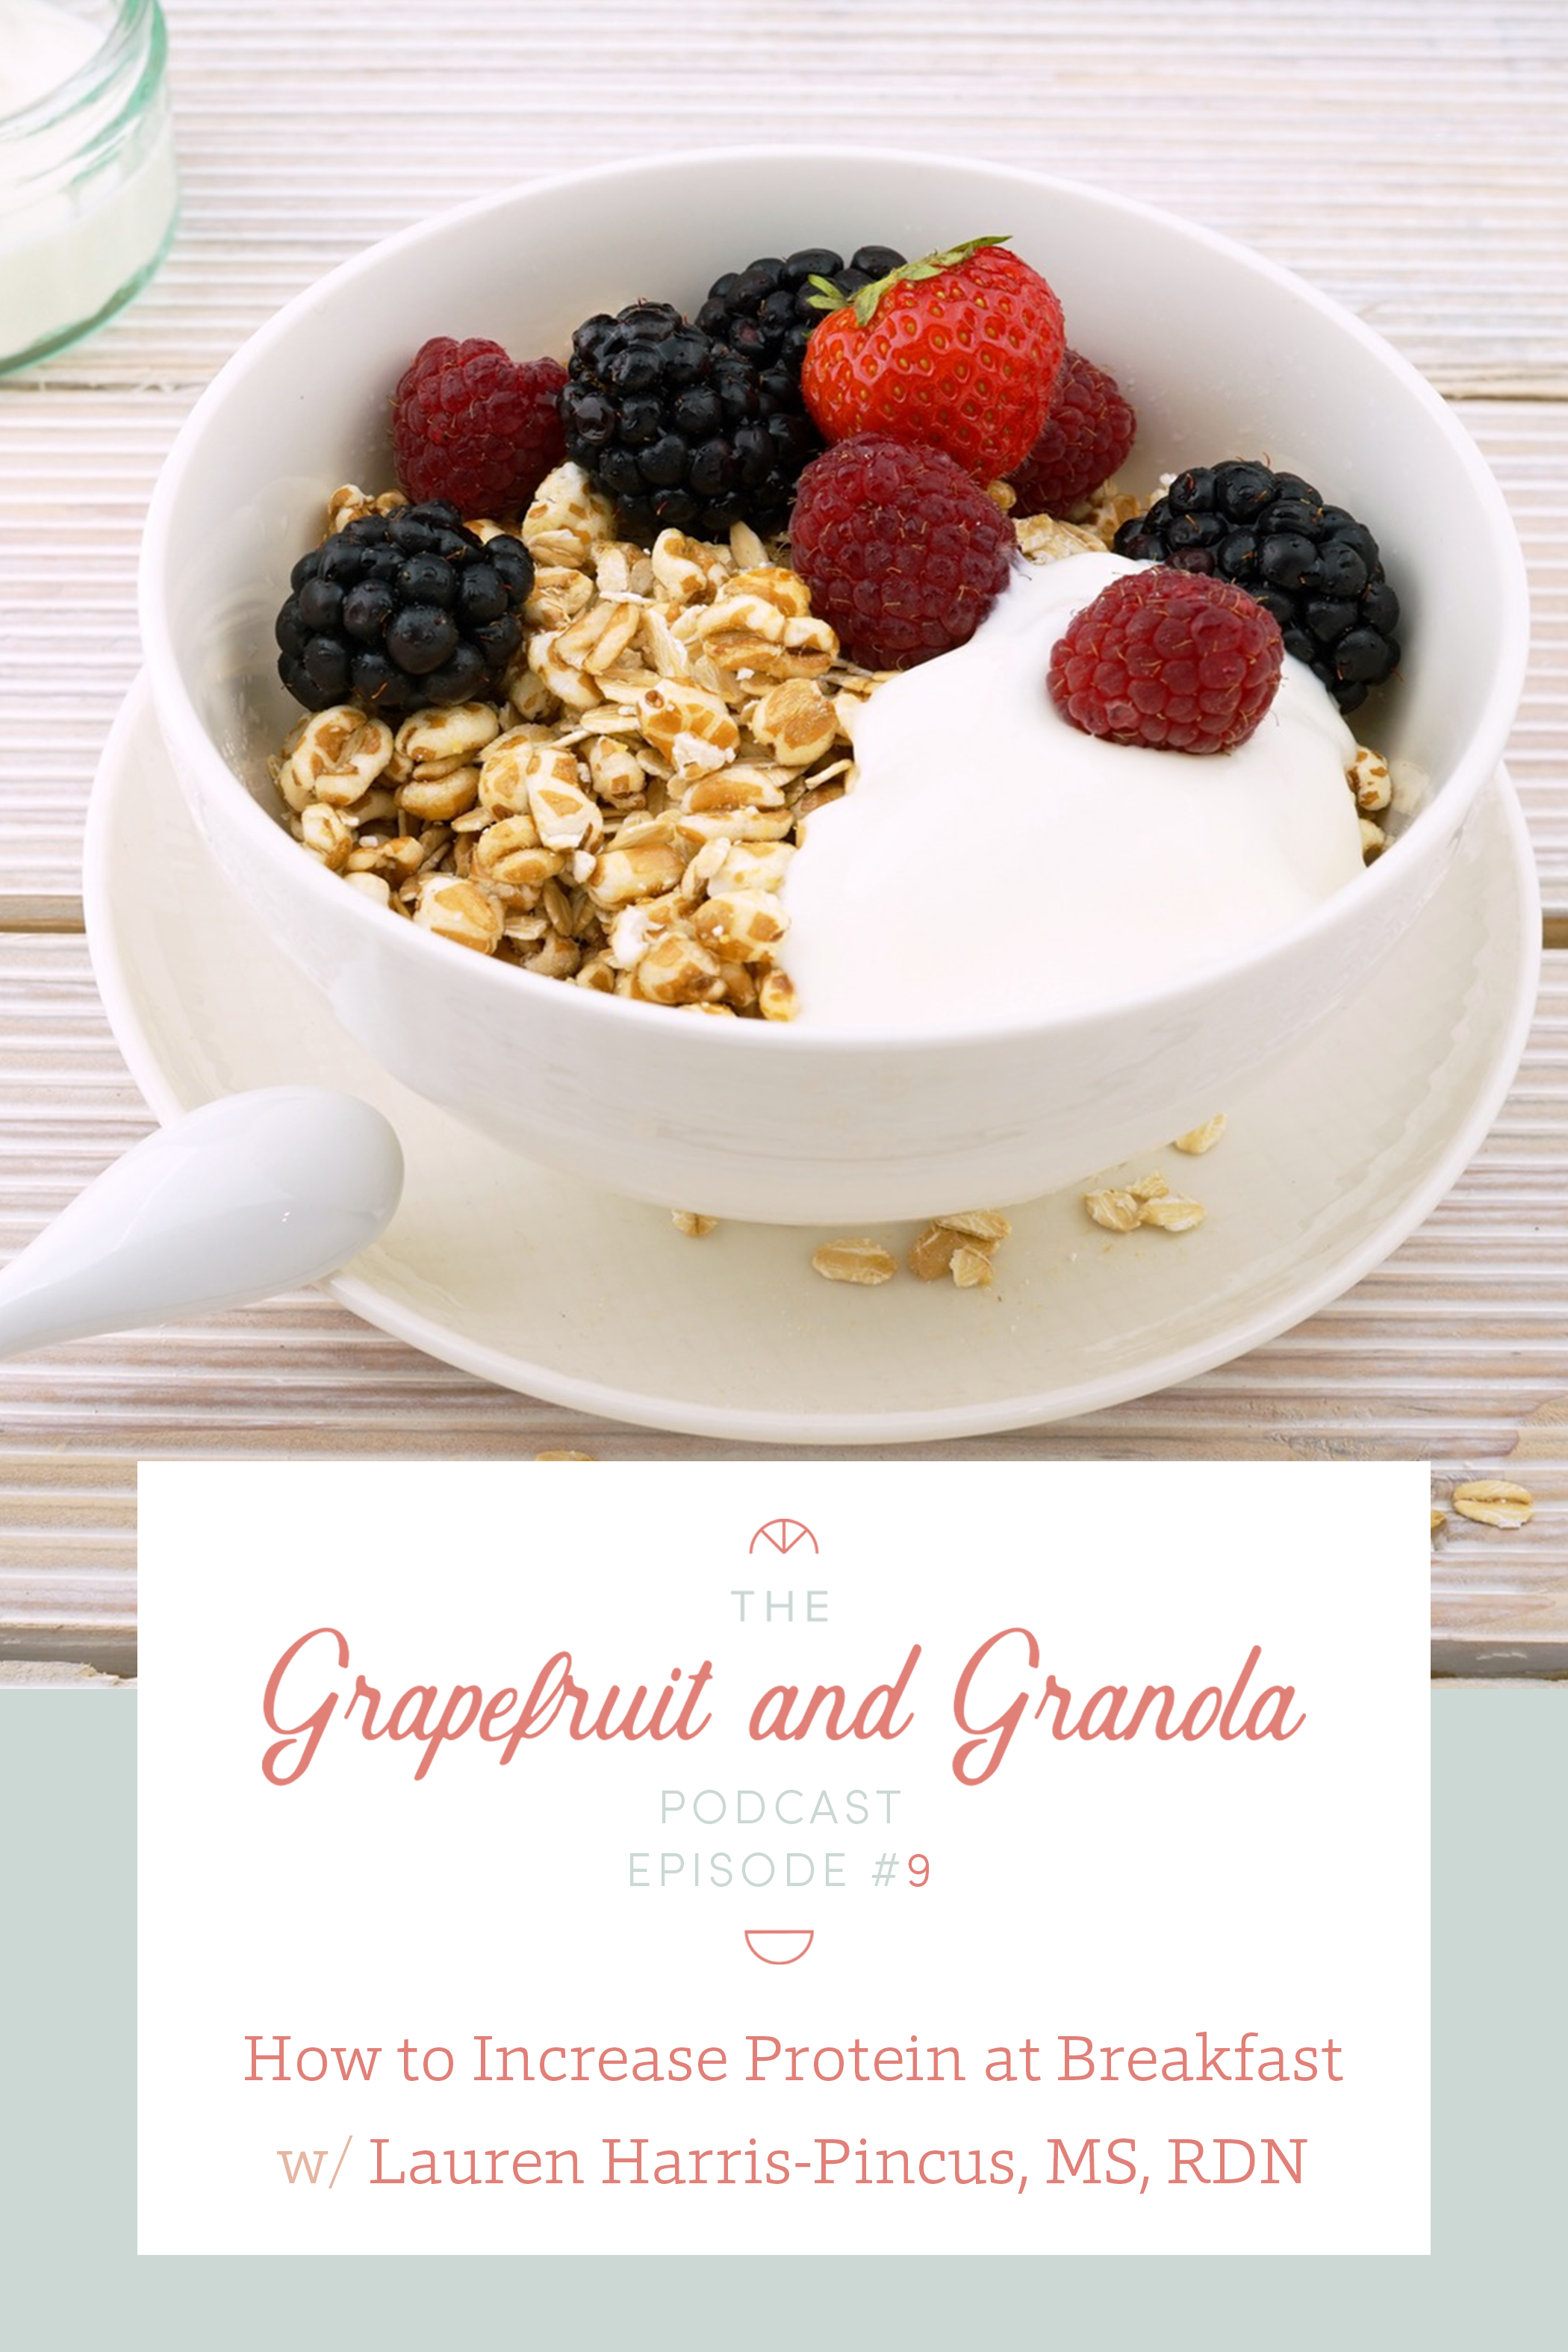 Tips for Adding Protein to Breakfast (Episode 9: Grapefruit and Granola Podcast)